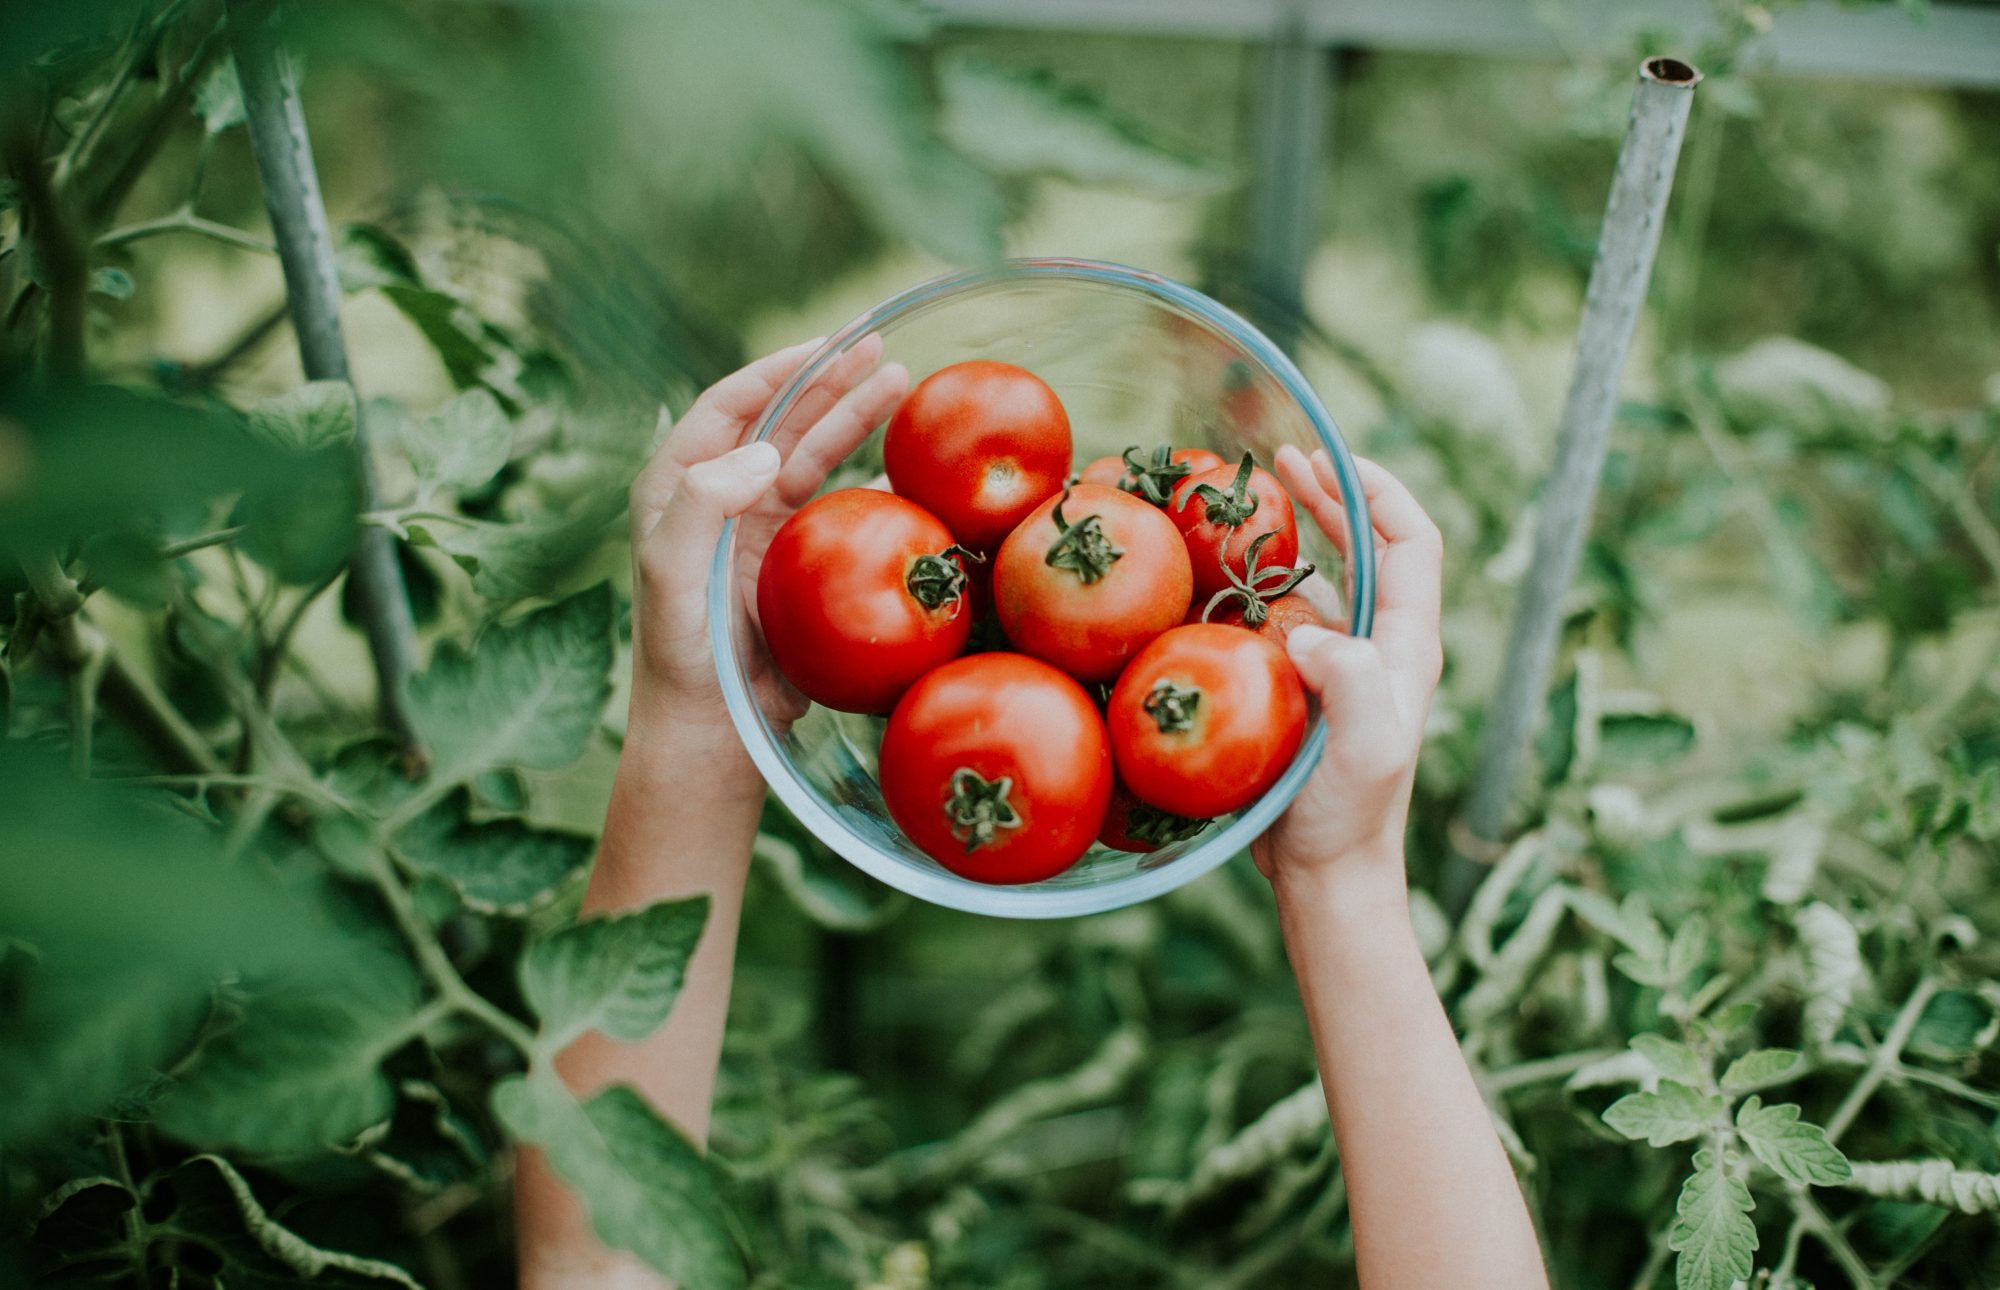 Bowl of tomatoes in garden